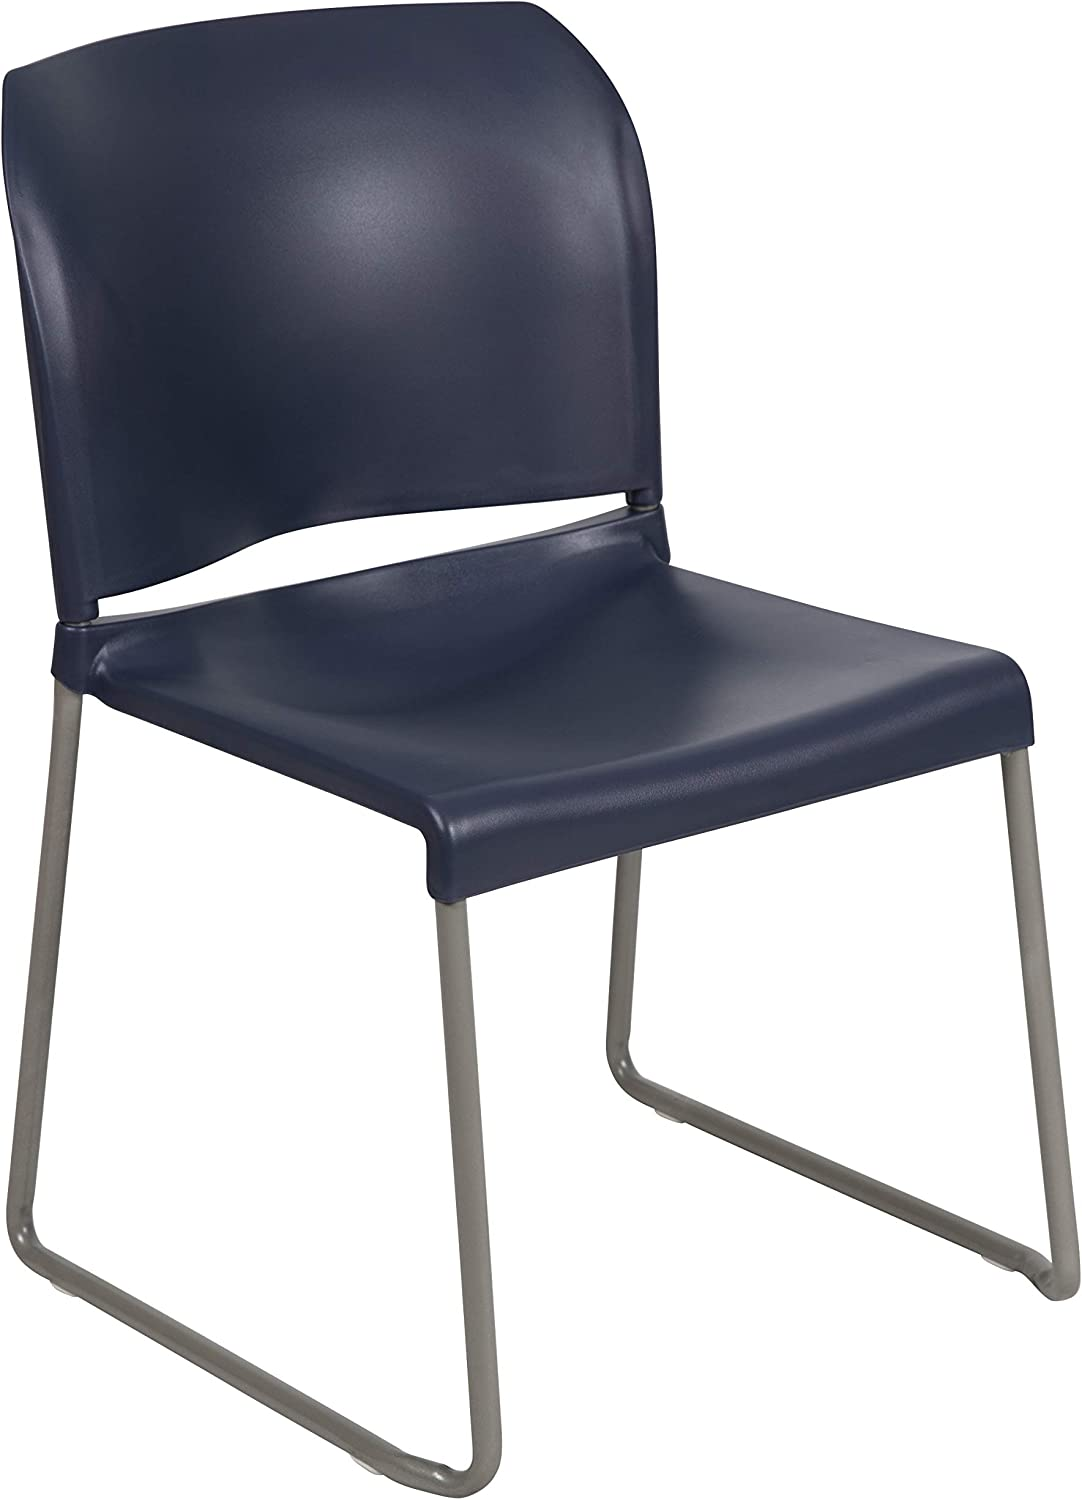 Flash Furniture HERCULES Series 880 lb. Capacity Navy Full Back Contoured Stack Chair with Gray Powder Coated Sled Base